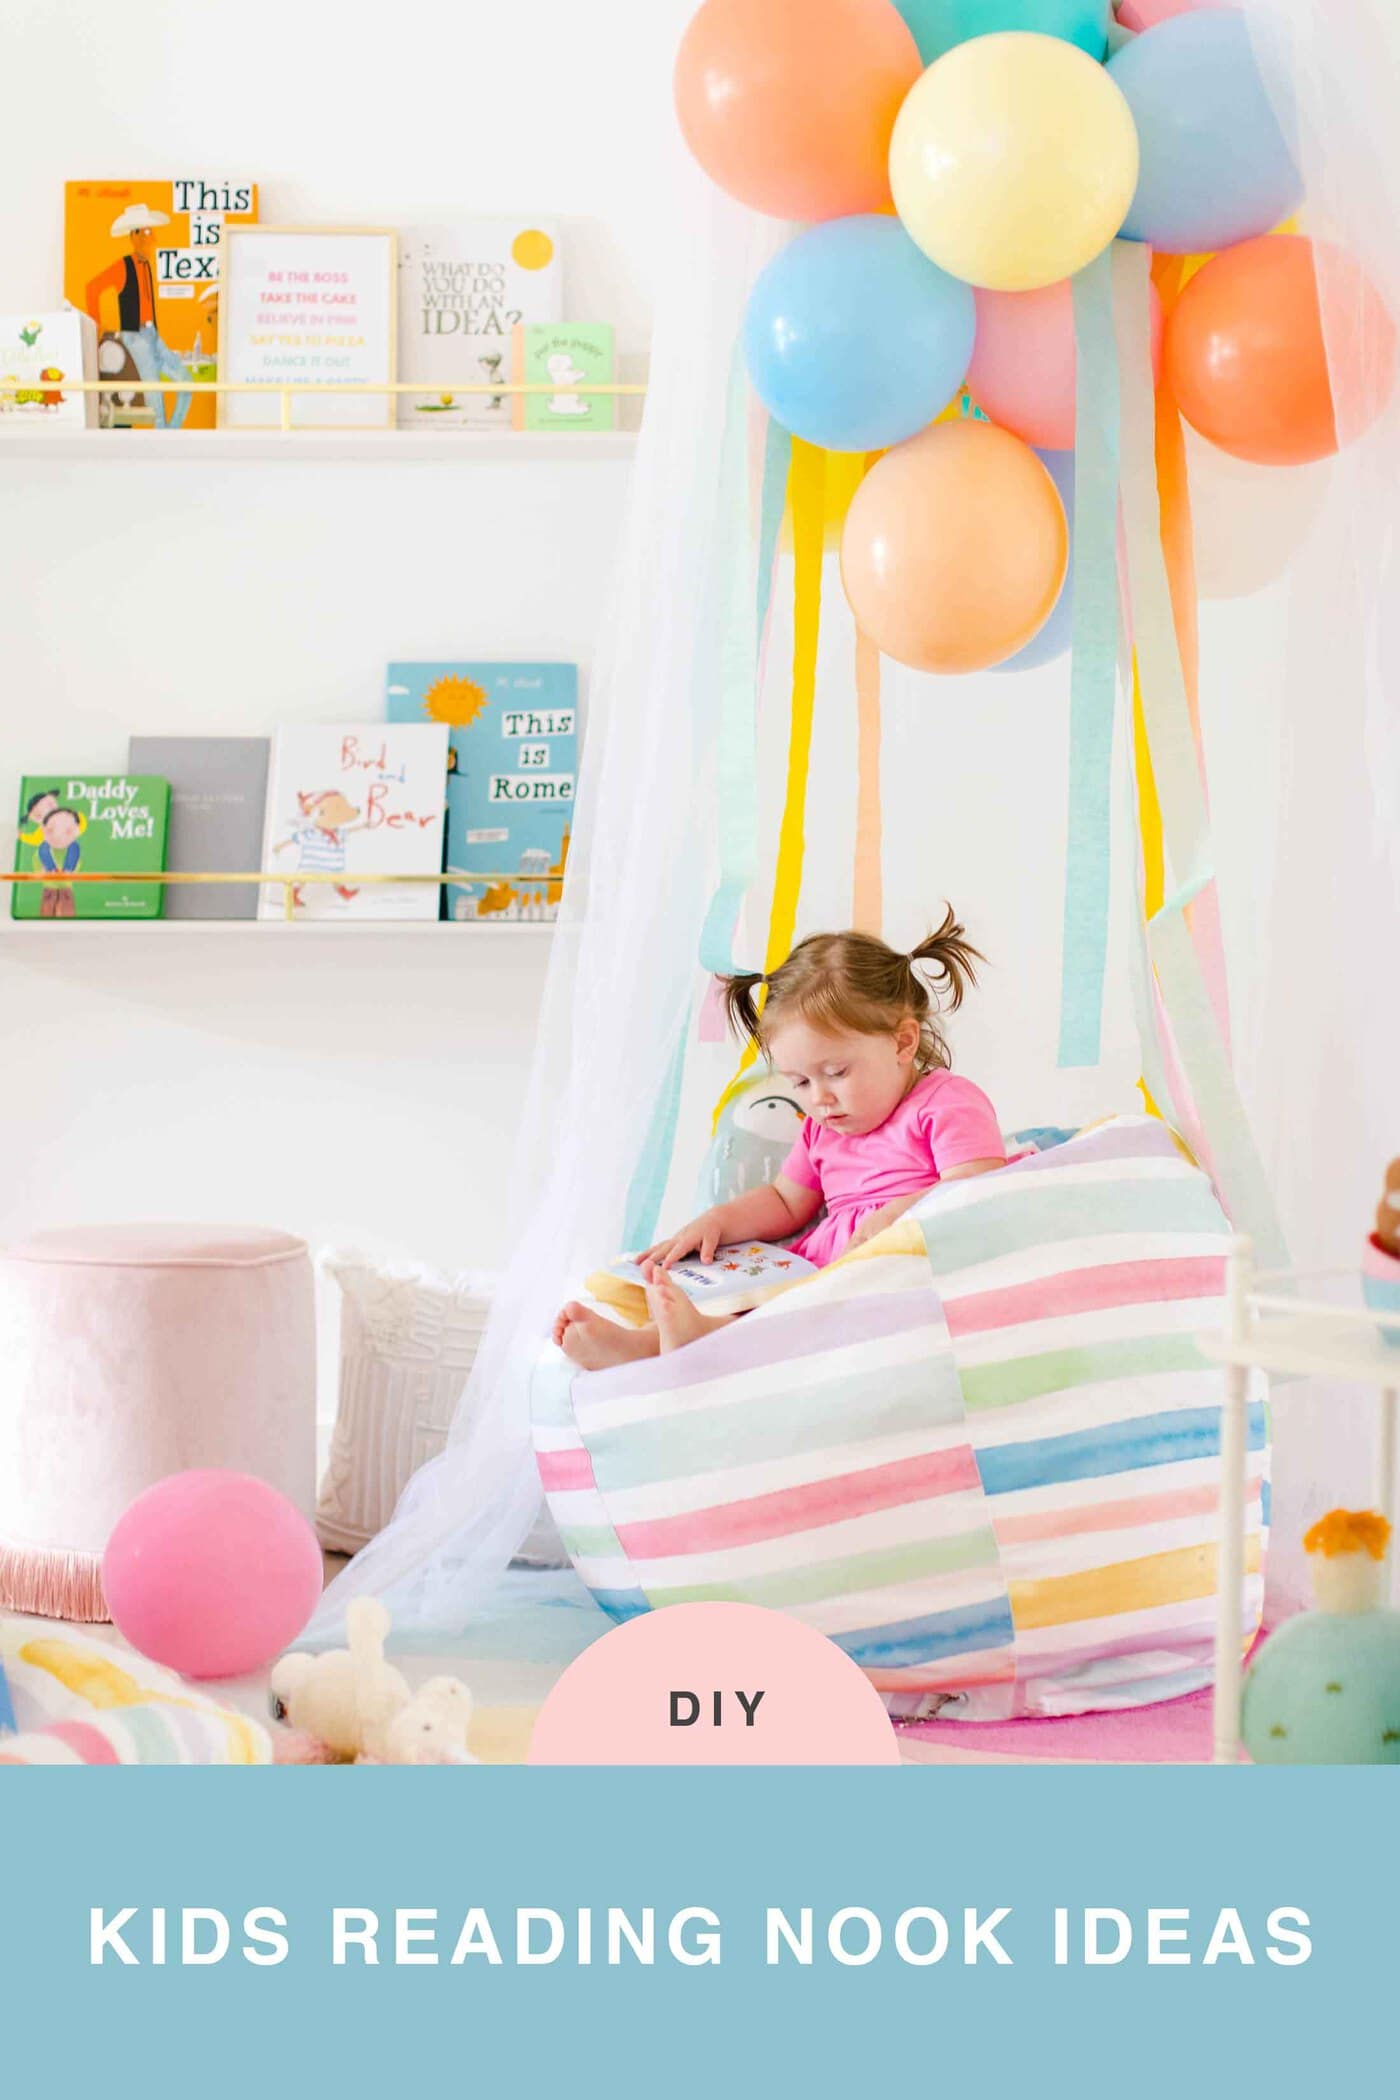 Sharing how to make this DIY book nook with a few colorful reading nook ideas to make it your own! #decor #kids #diy #reading by top Houston lifestyle blogger Ashley Rose of Sugar & Cloth